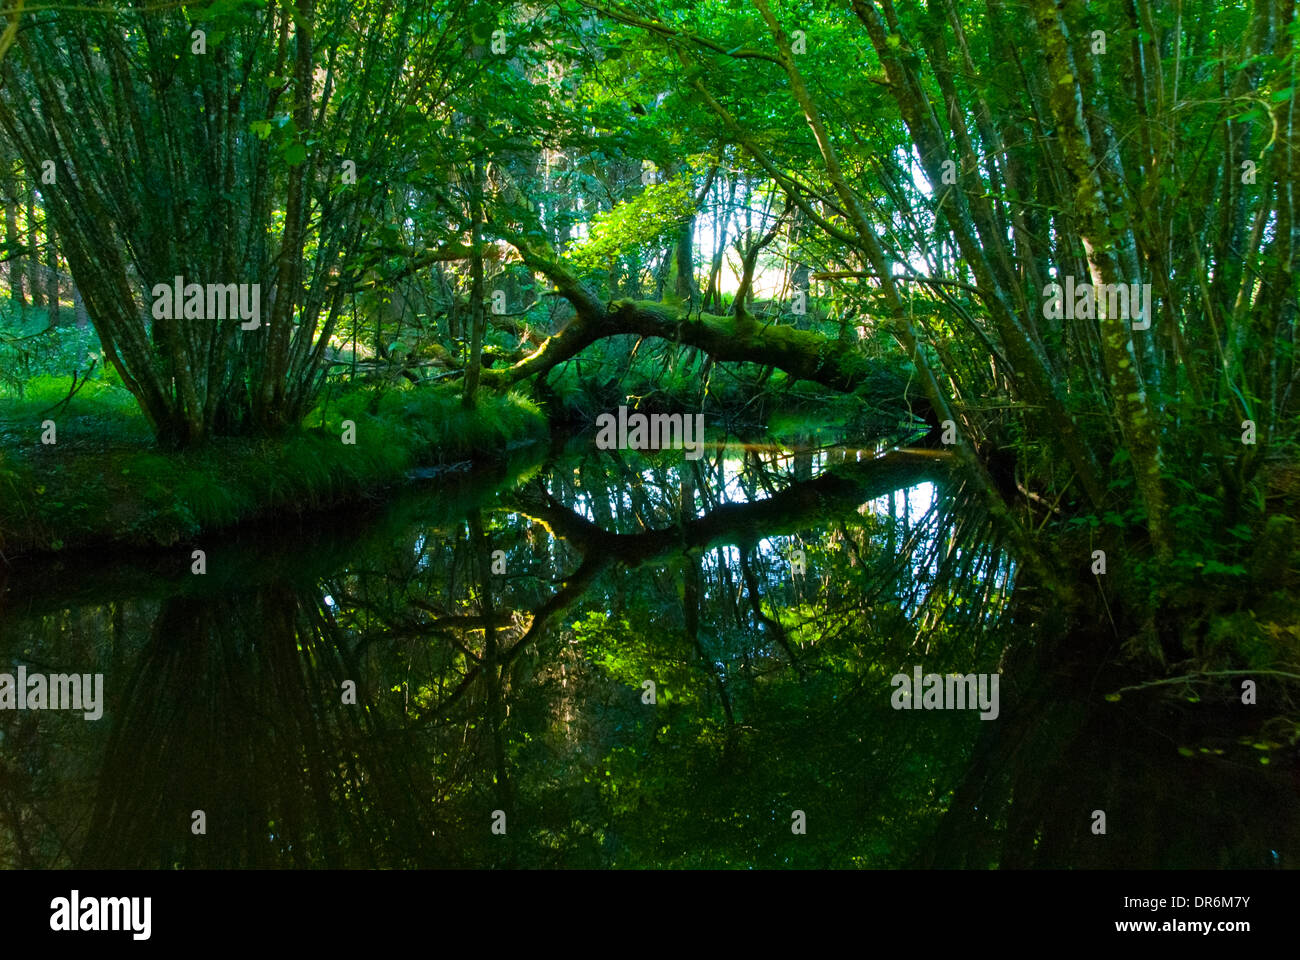 Fallen tree reflected on surface of water Stock Photo